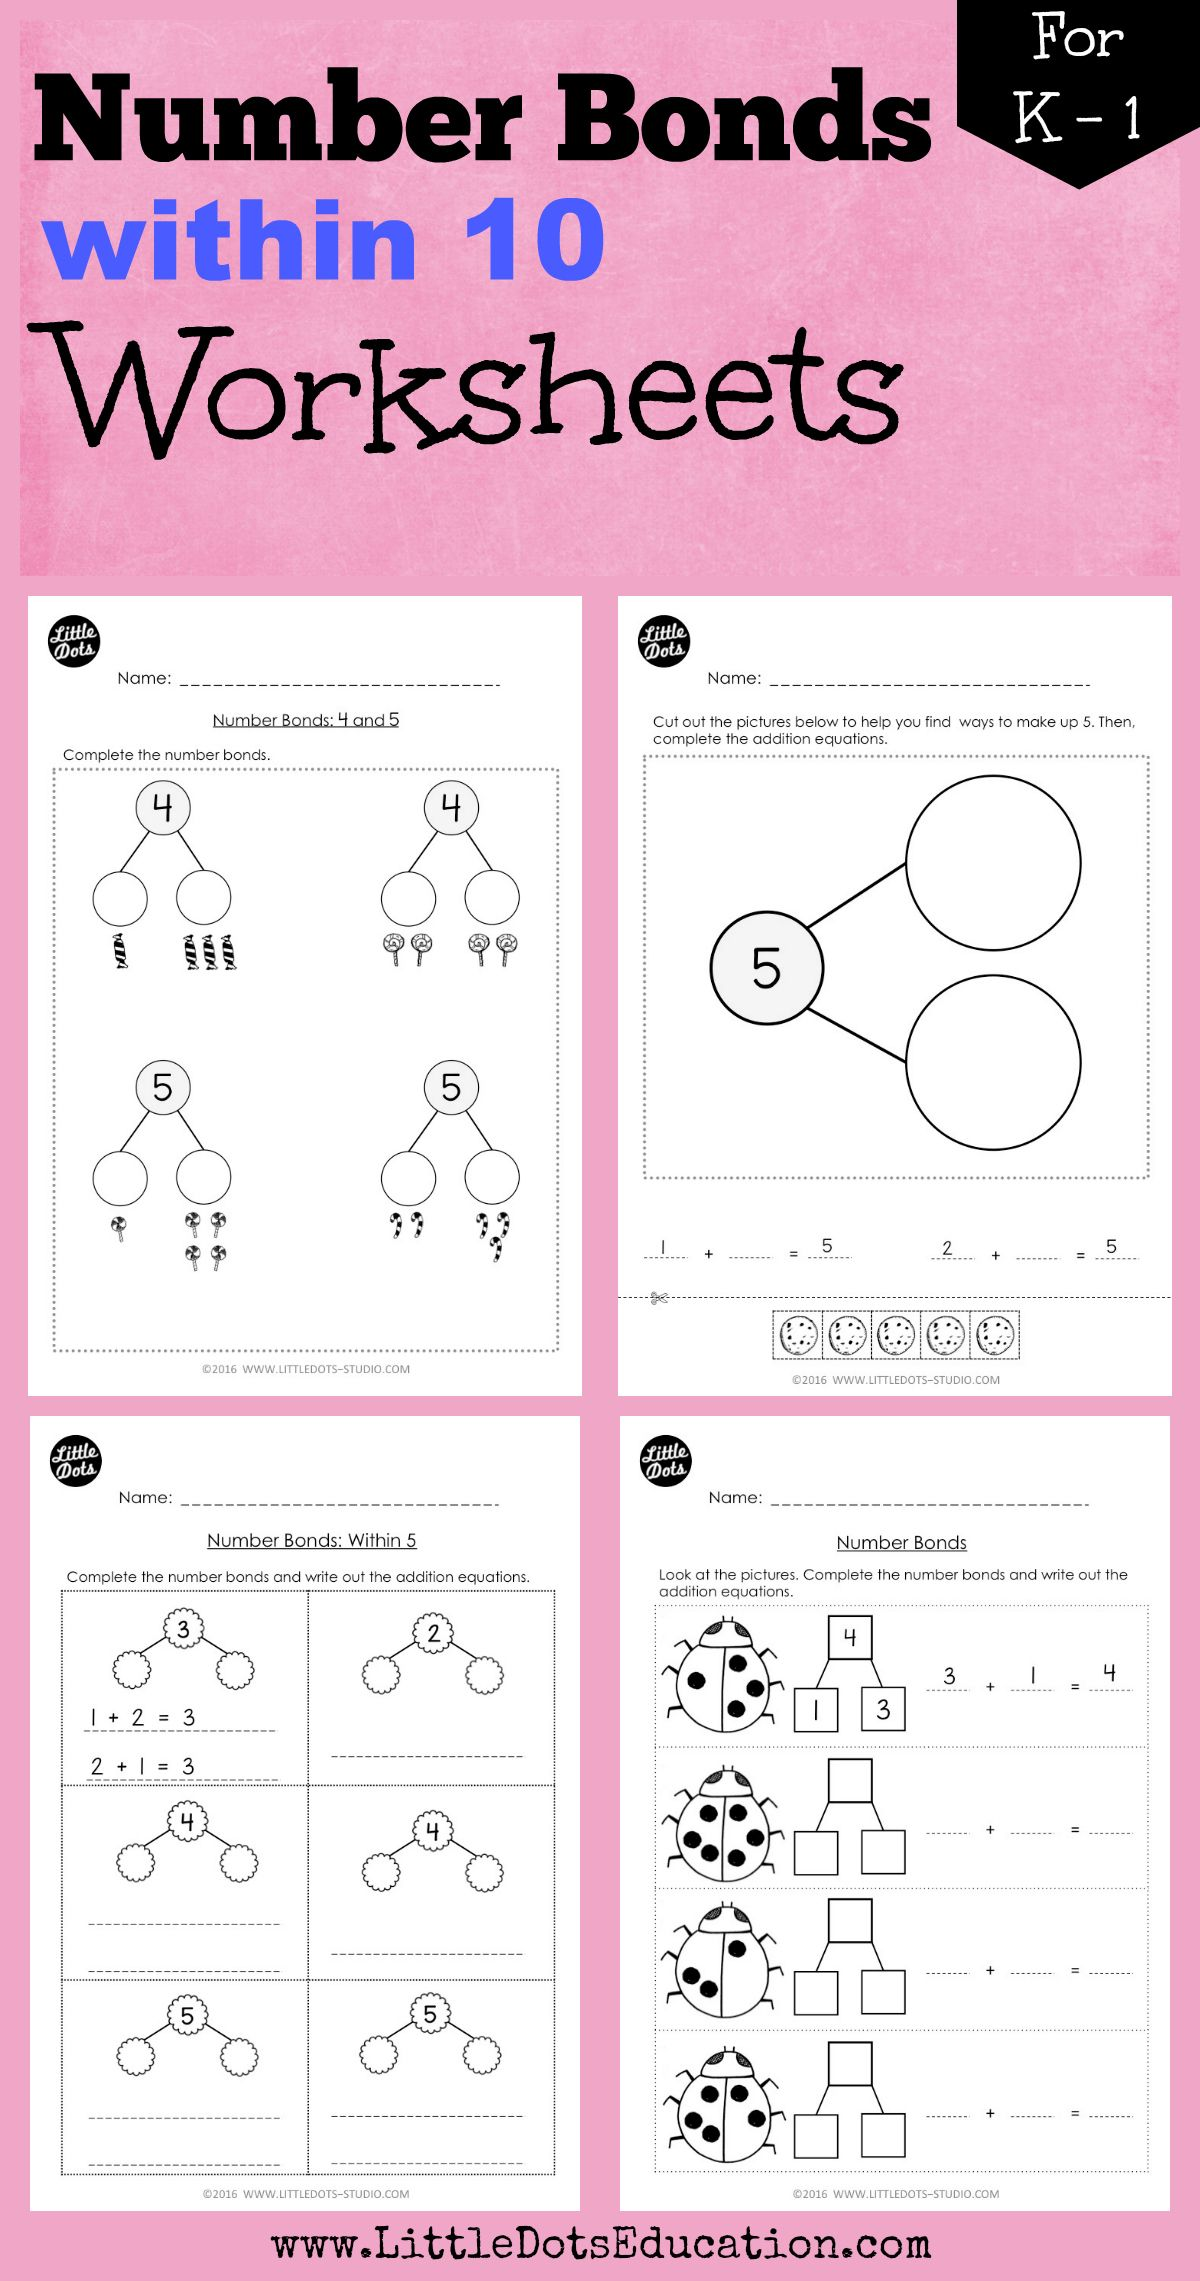 Download Number Bonds Worksheets Within 10 For Kindergarten To Grade 1